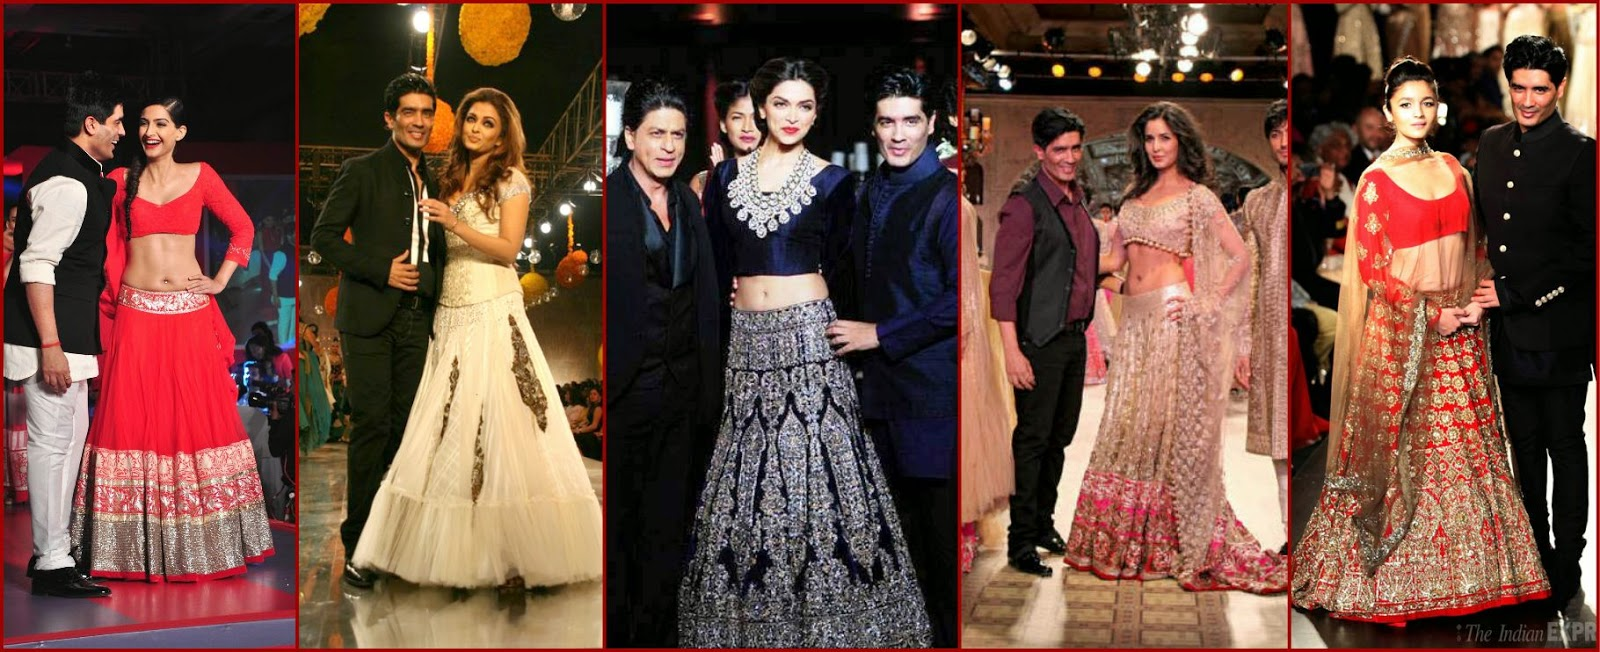 Manish malhotra at fashion week , sonamkapoor in manish malhotra, aishwarya in manish malhotra, deepika in manish malhotra, katrina kaf in manish designs, alia bhatt in manish malhotra